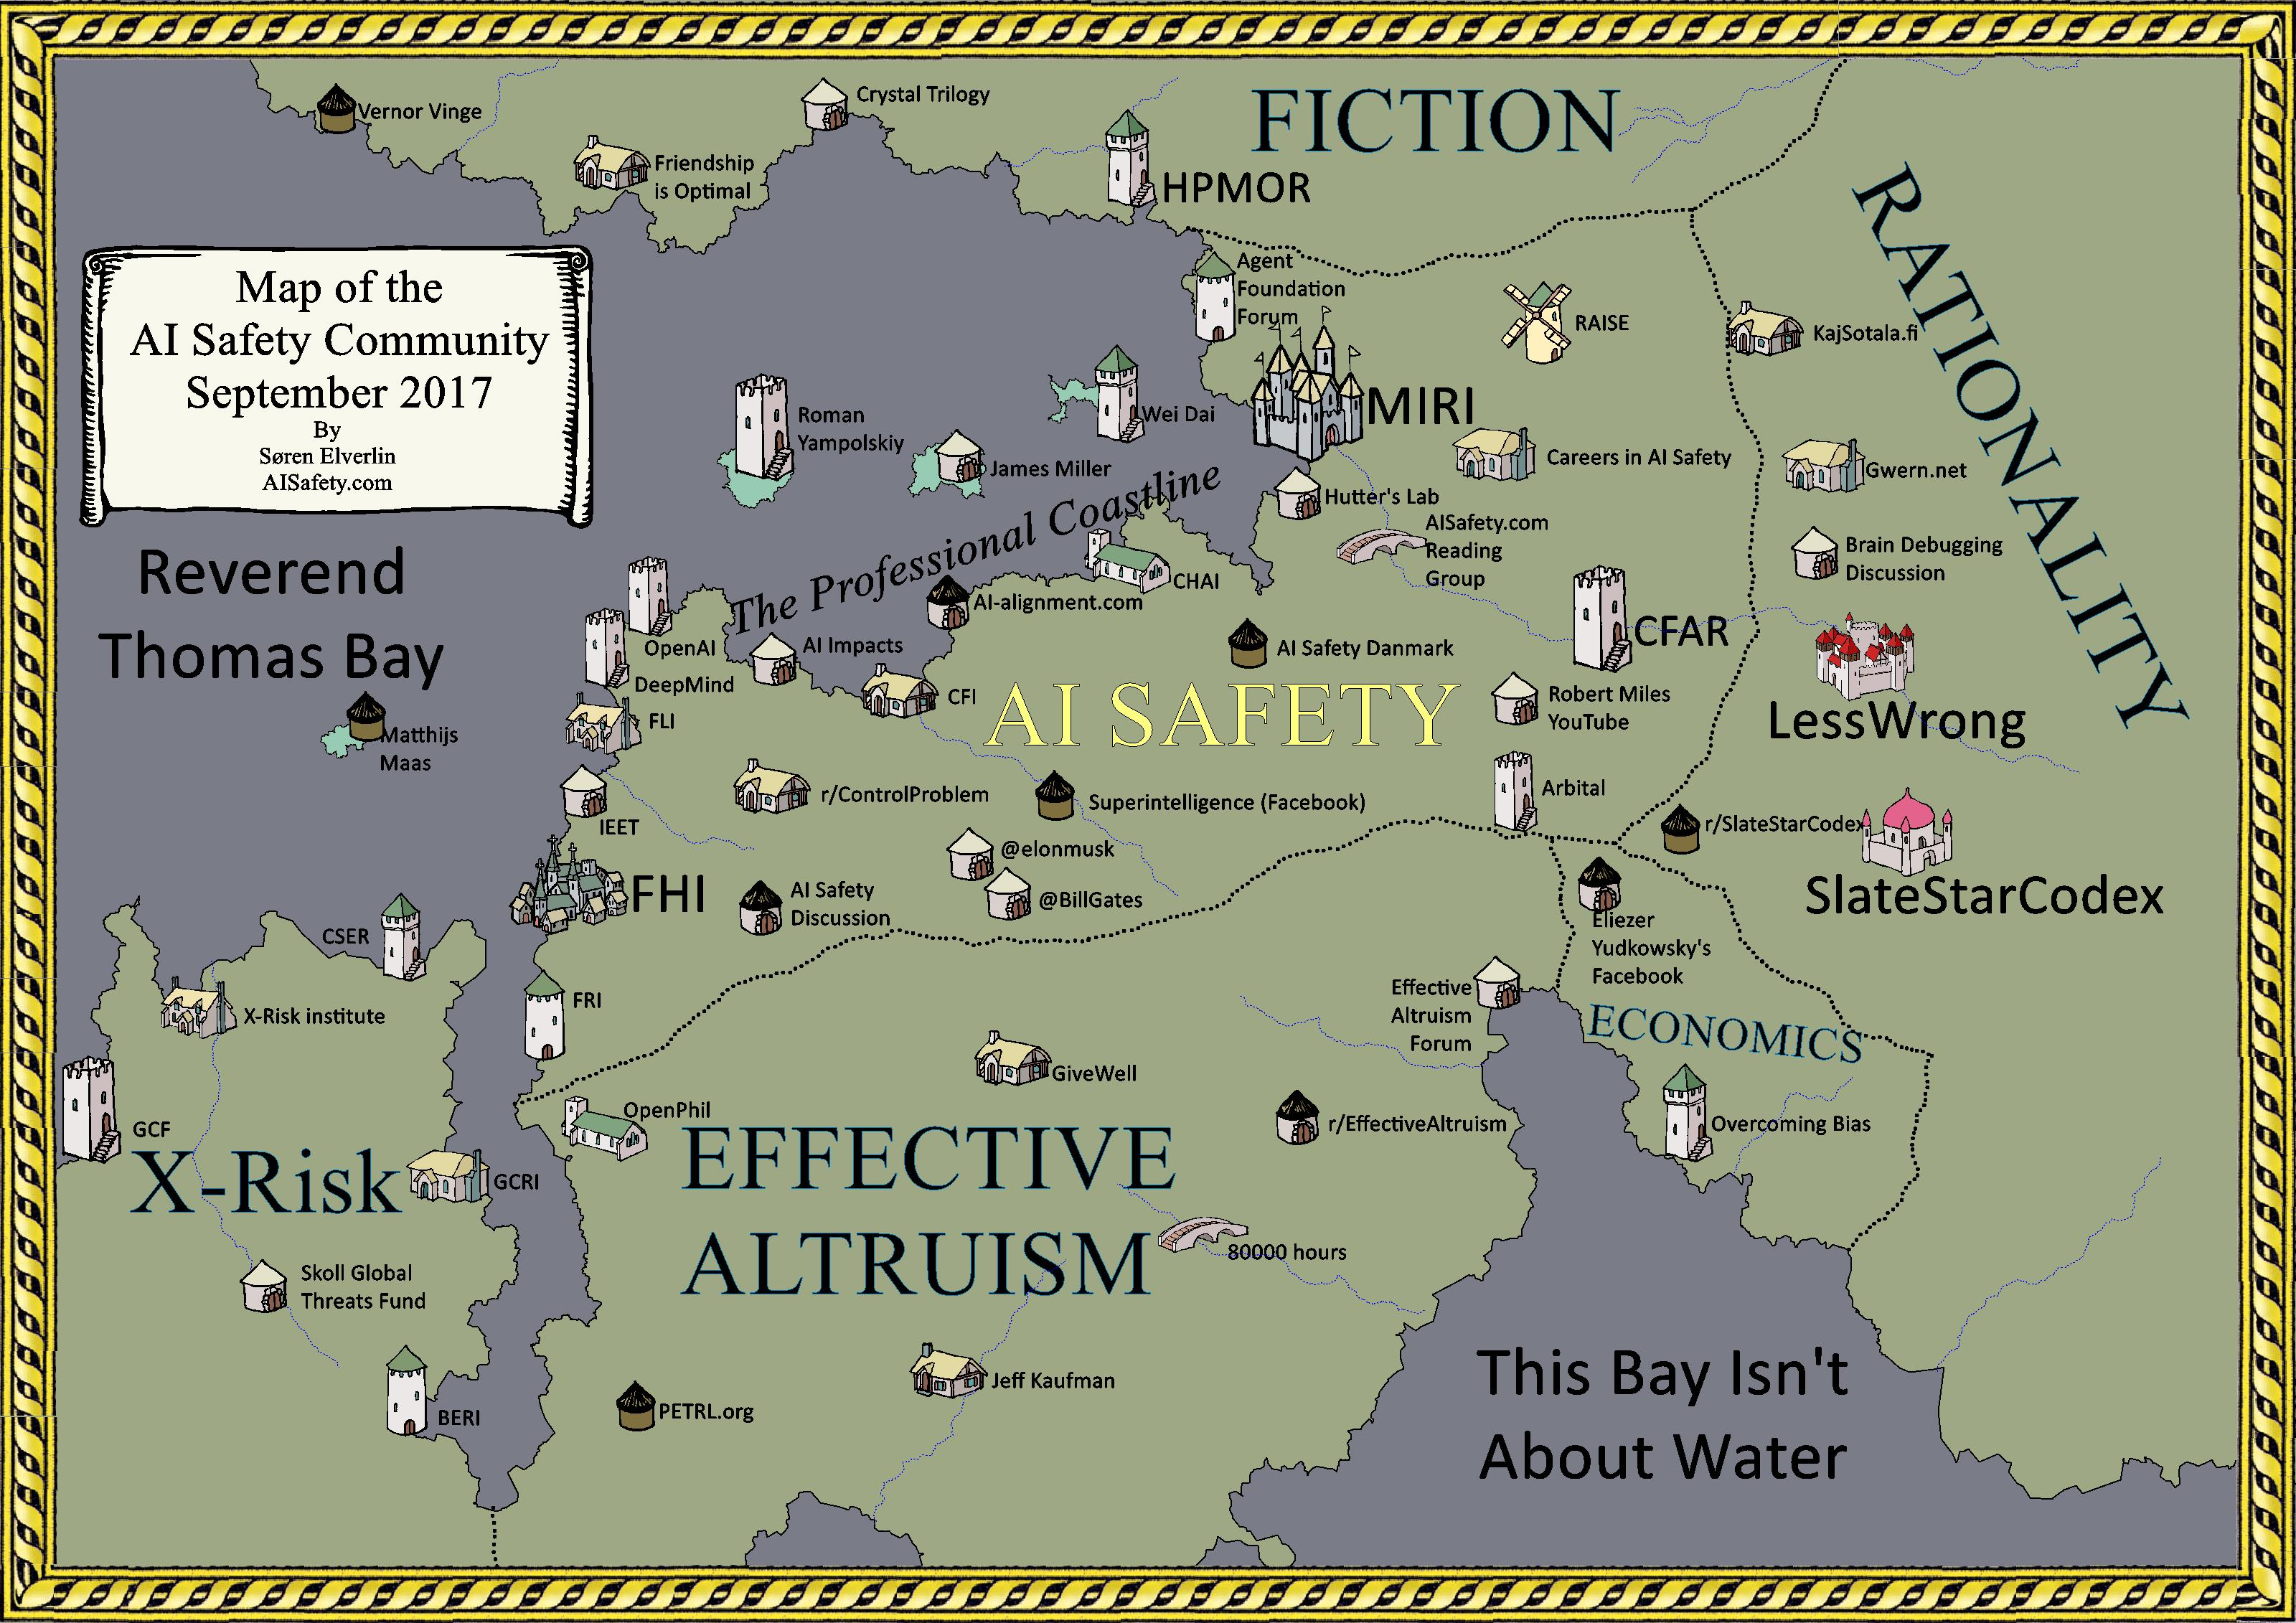 Map Of The AI Safety Community AISafetycom - I have a map